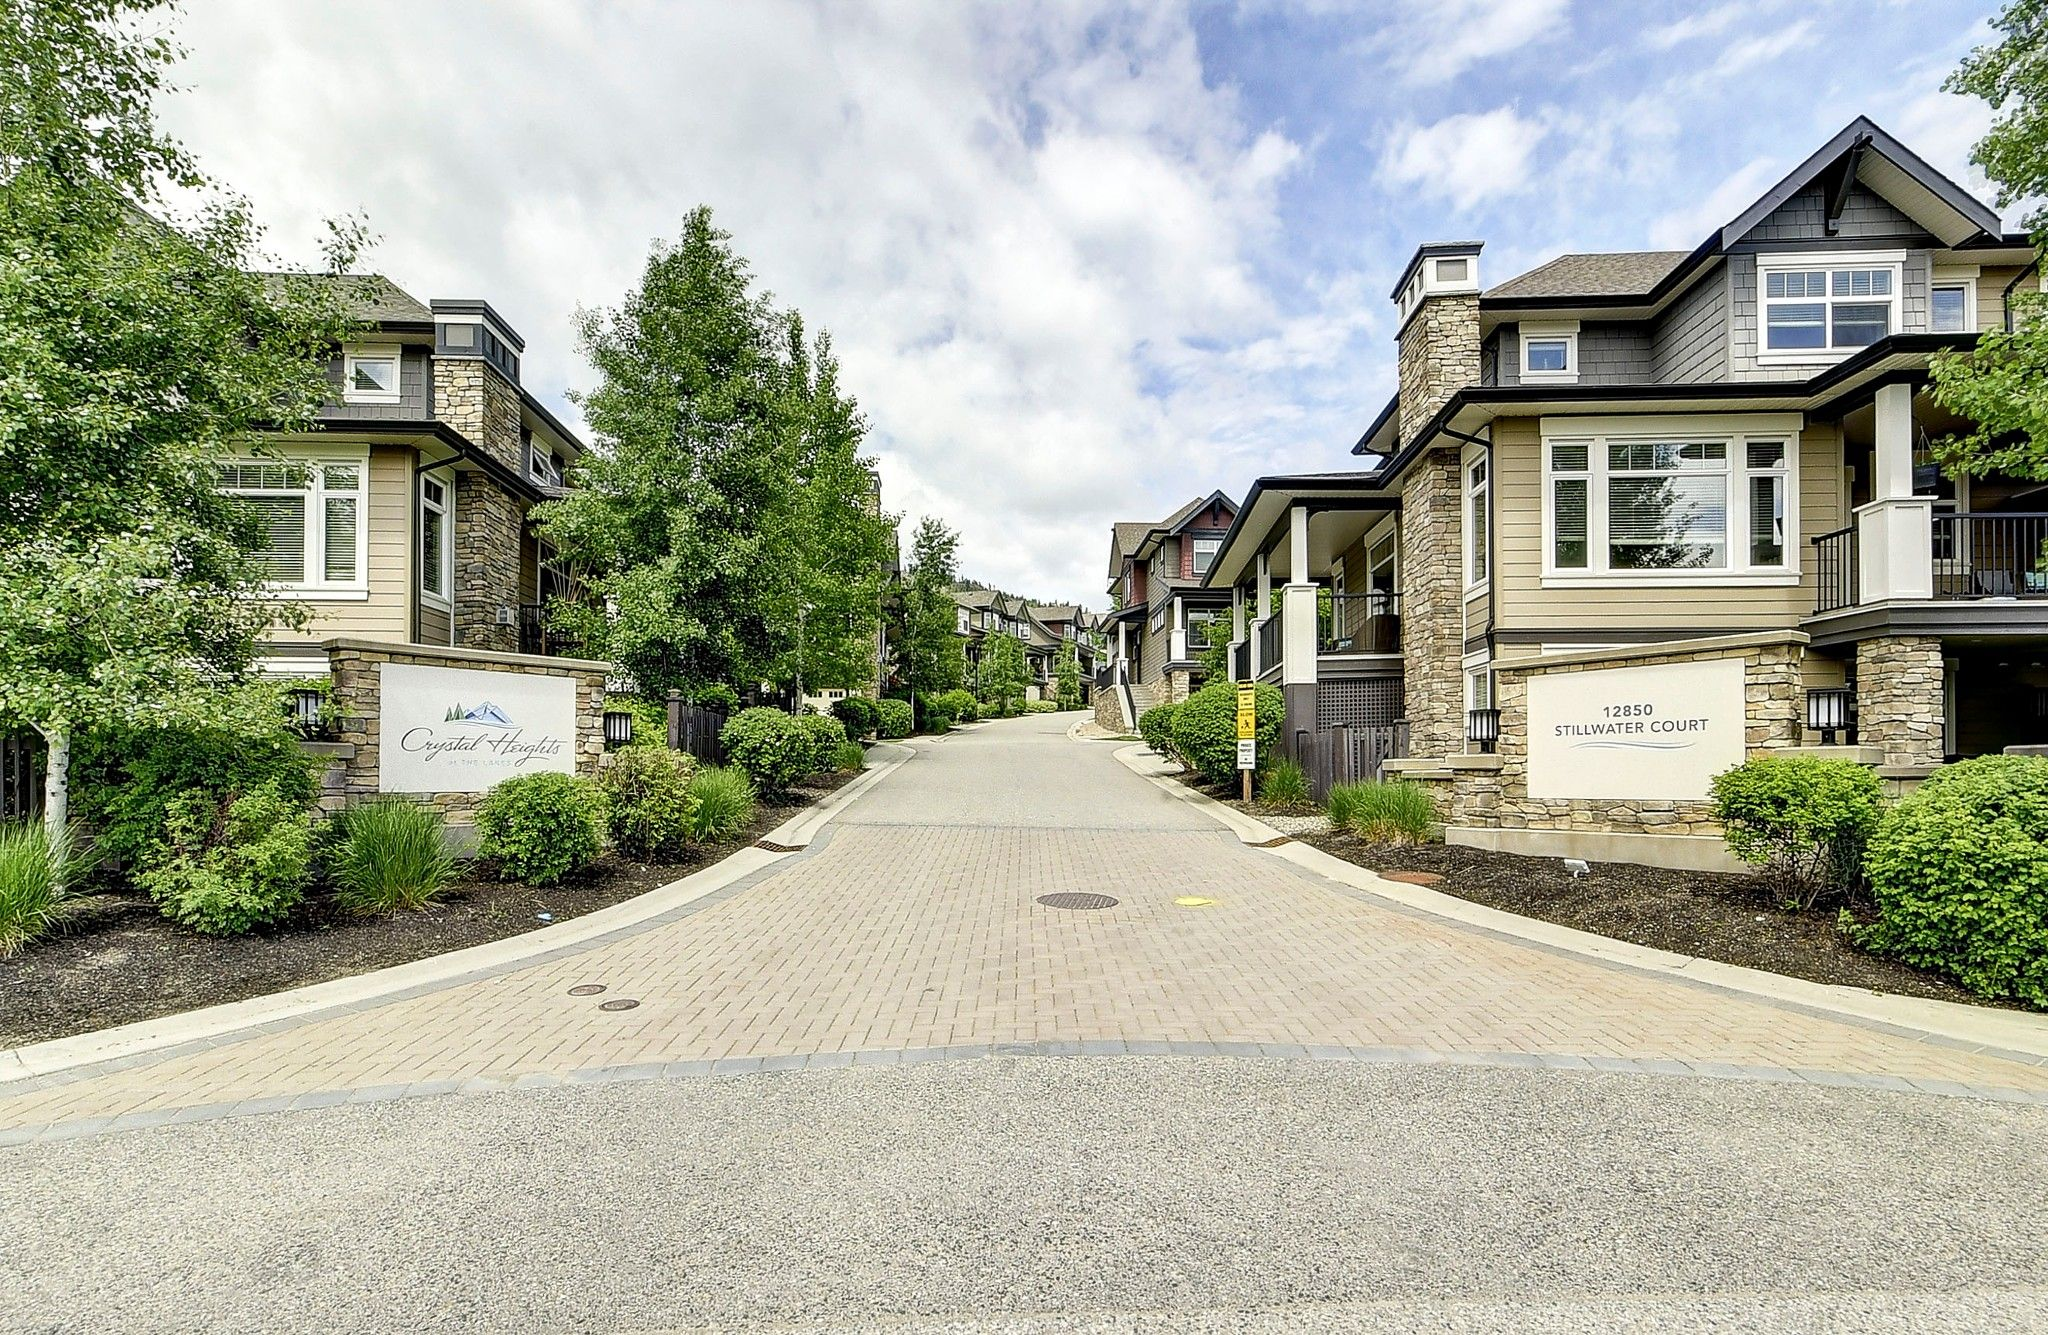 Main Photo: 60 12850 stillwater court: lake country House for sale (Central Okanagan)  : MLS®# 10211098